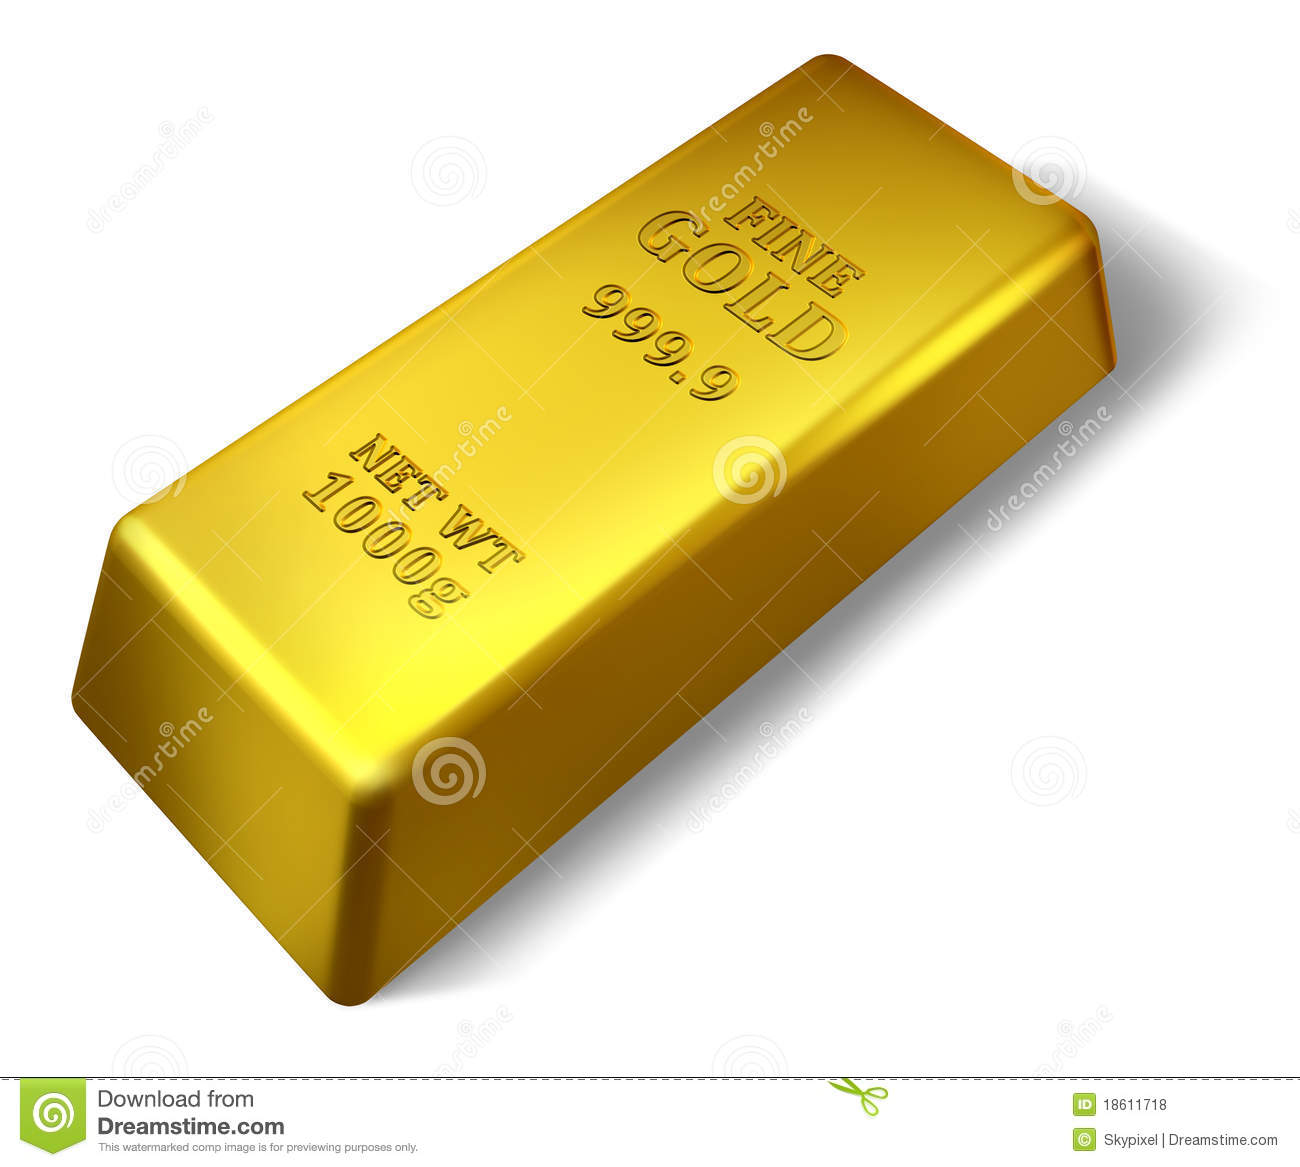 gold bar black singles Find out the actual size of a gold bar, from 1 gram to 1 oz to 1 kilo know how big a gold bar is before you buy what is the real size of a gold bar.